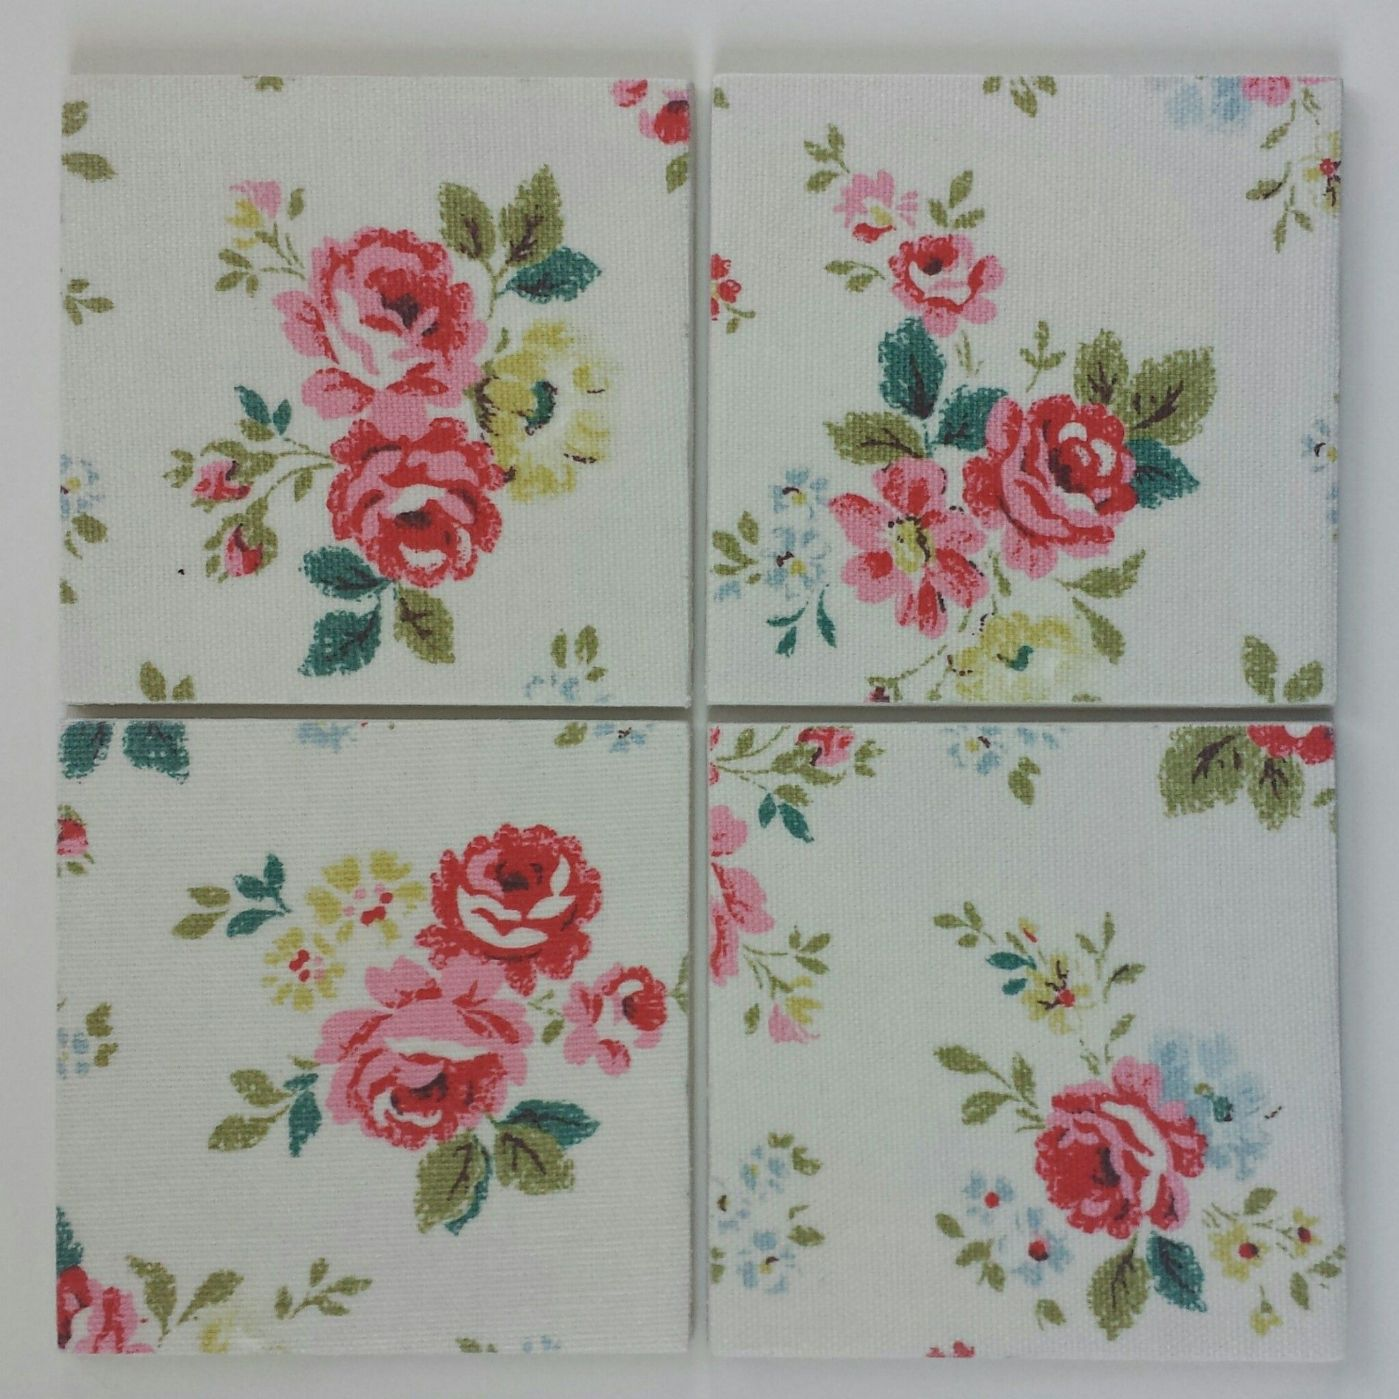 kitchen bathroom wall tiles made with cath kidston field roses - Kitchen Bathroom Tiles